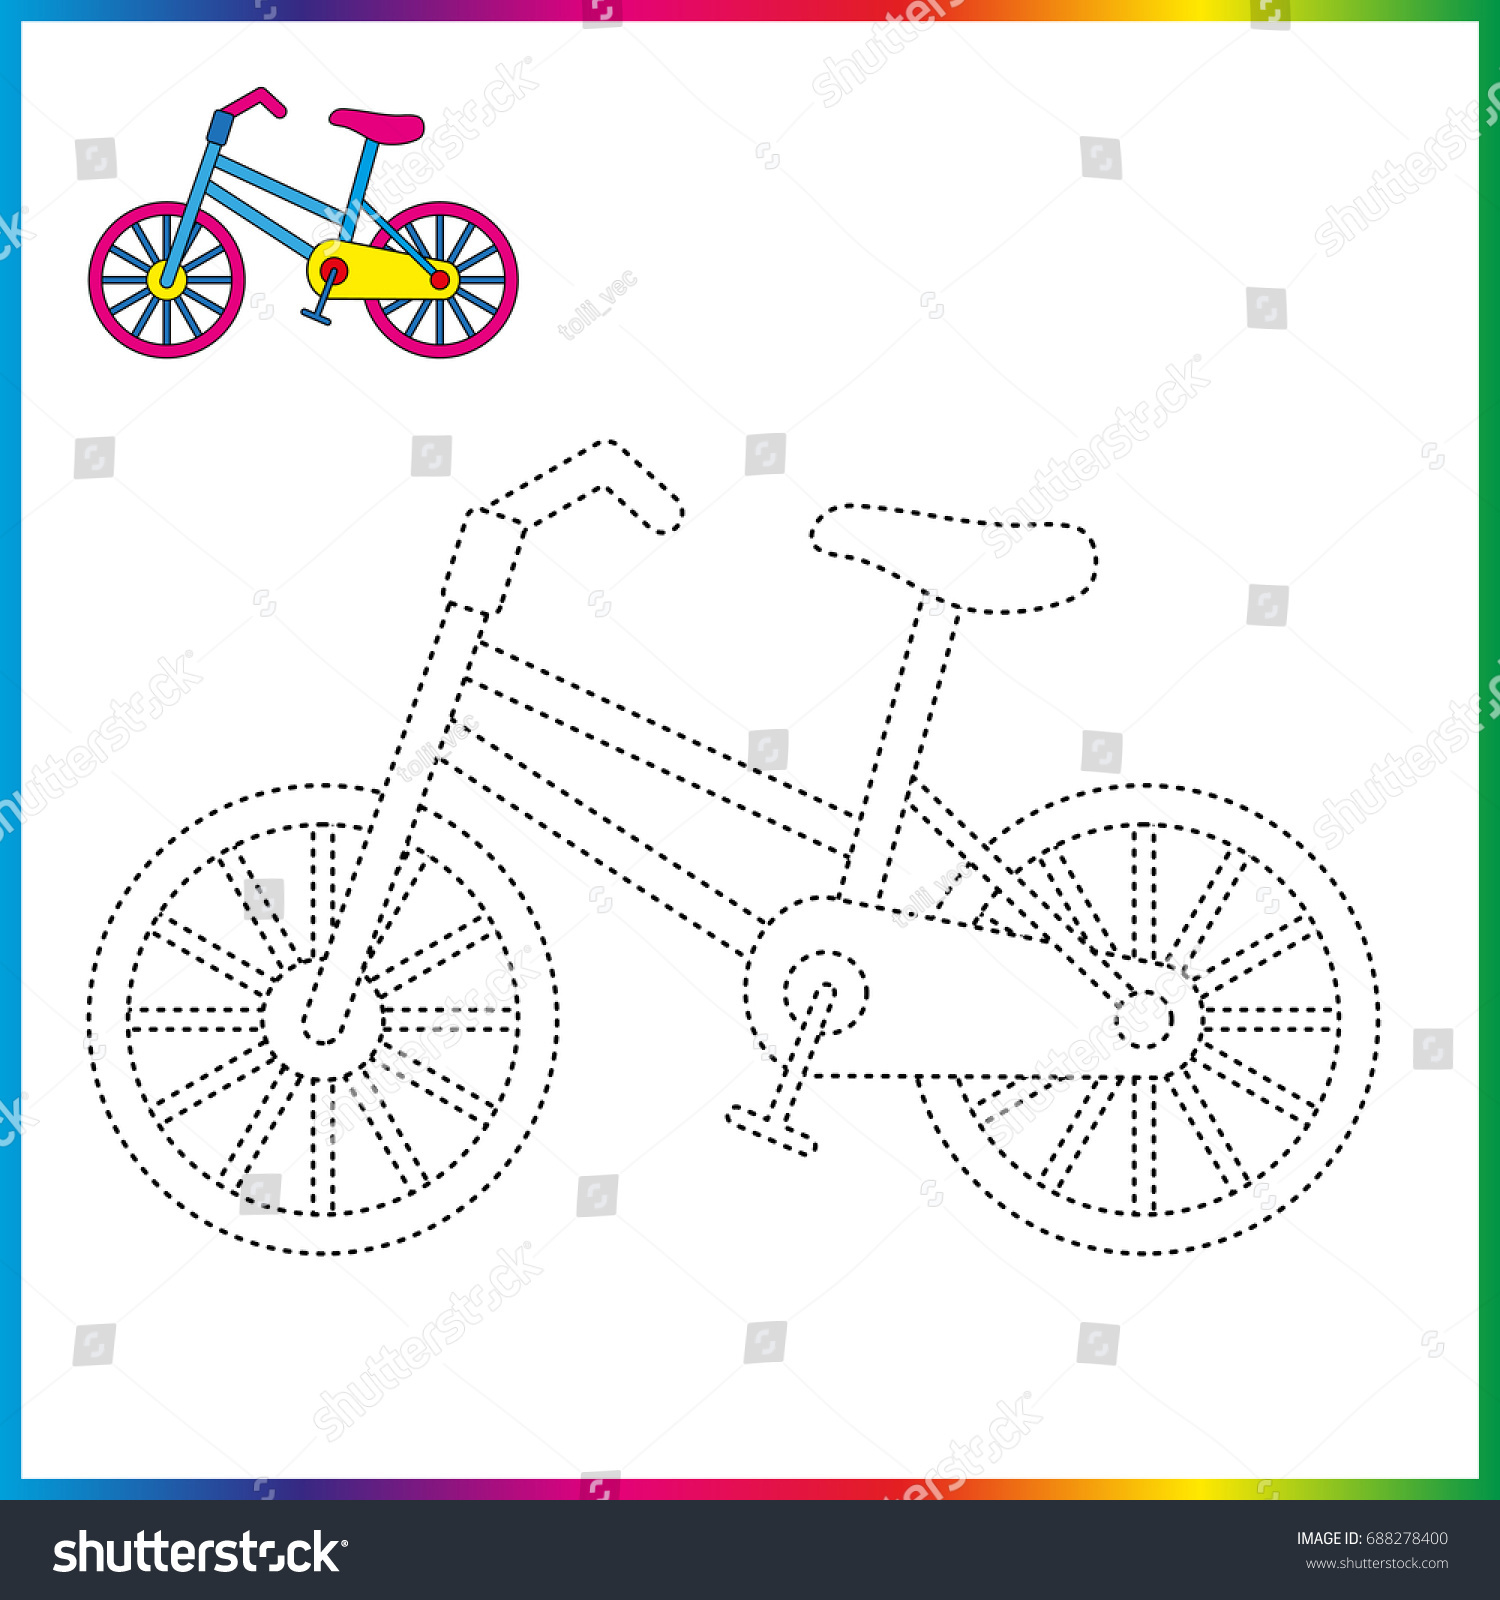 Bicycle Connect Dots Coloring Page Worksheet Stock Vector